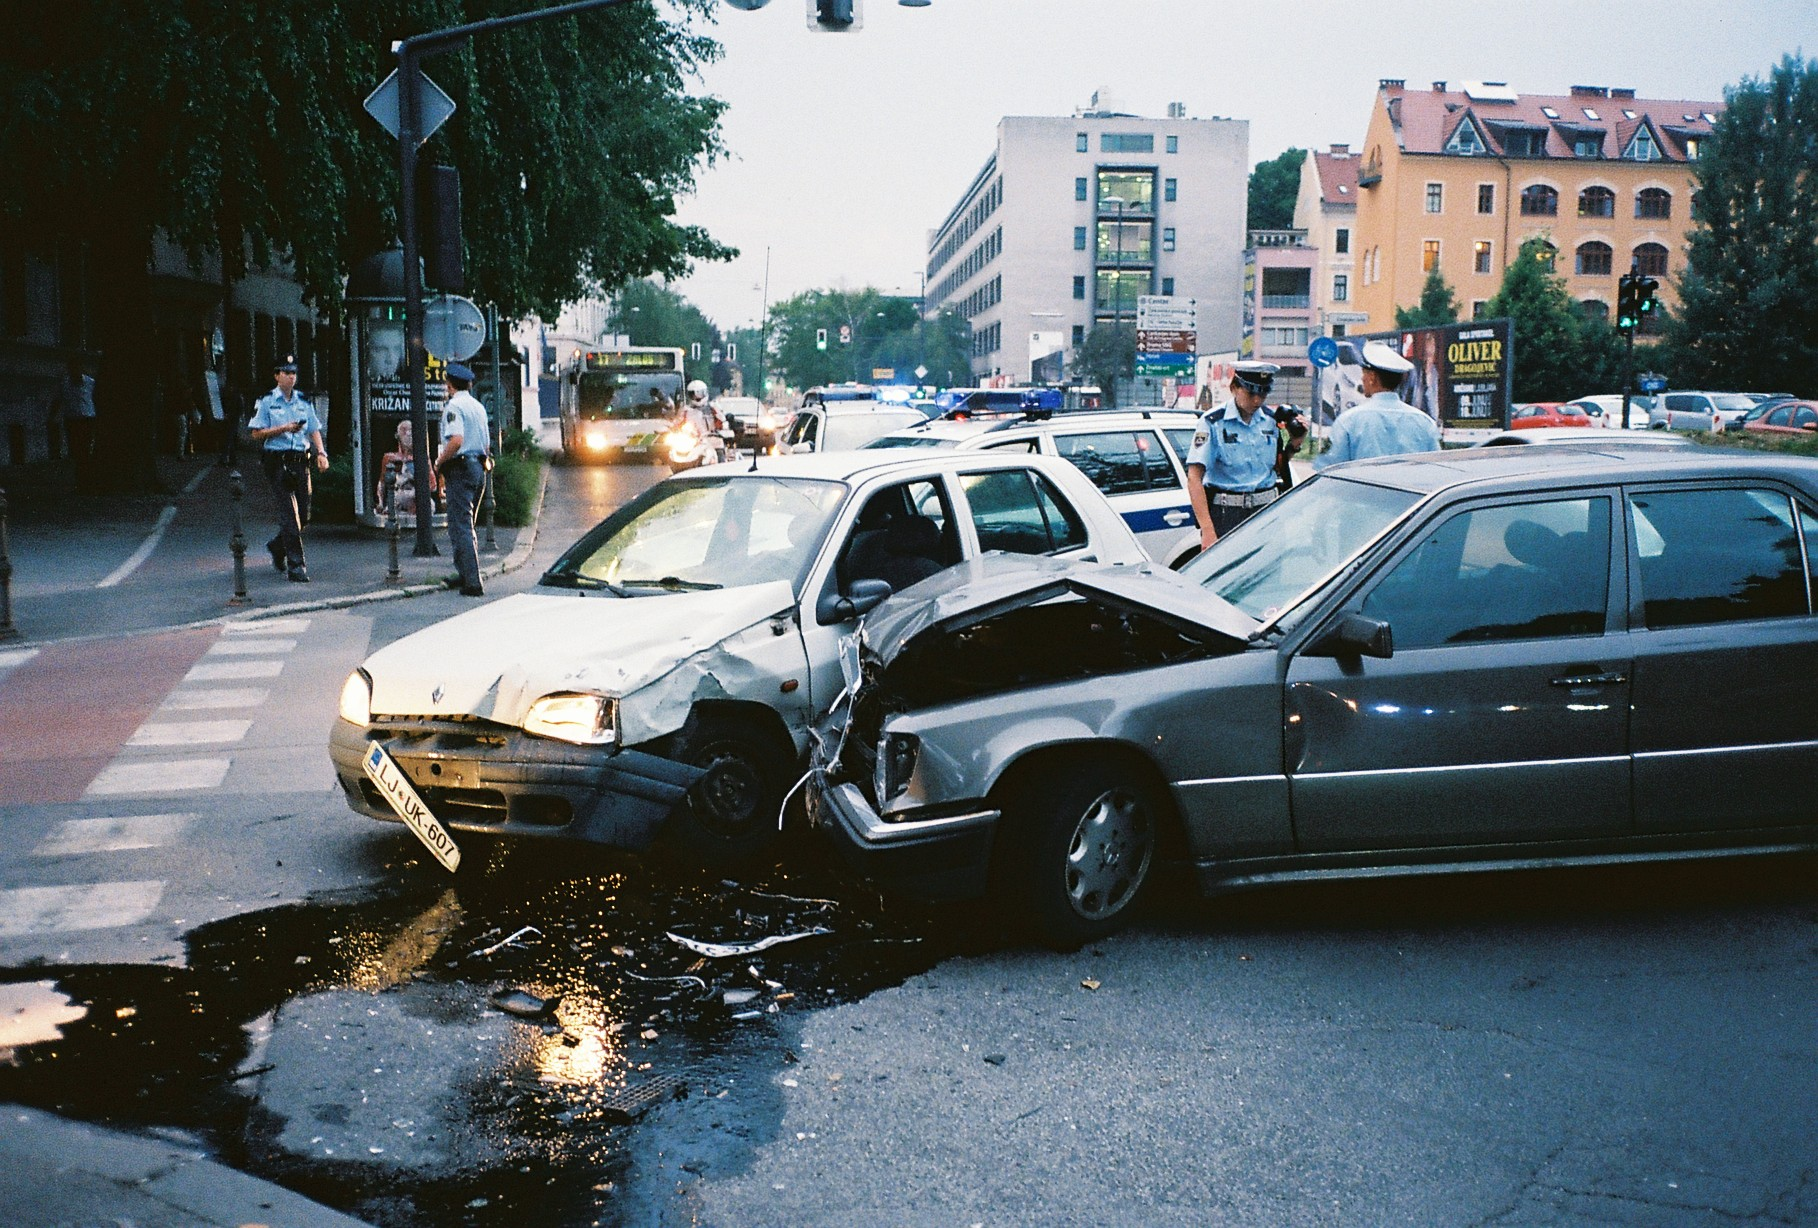 Car crash injury lawyer : Get the best advice from our lawyers